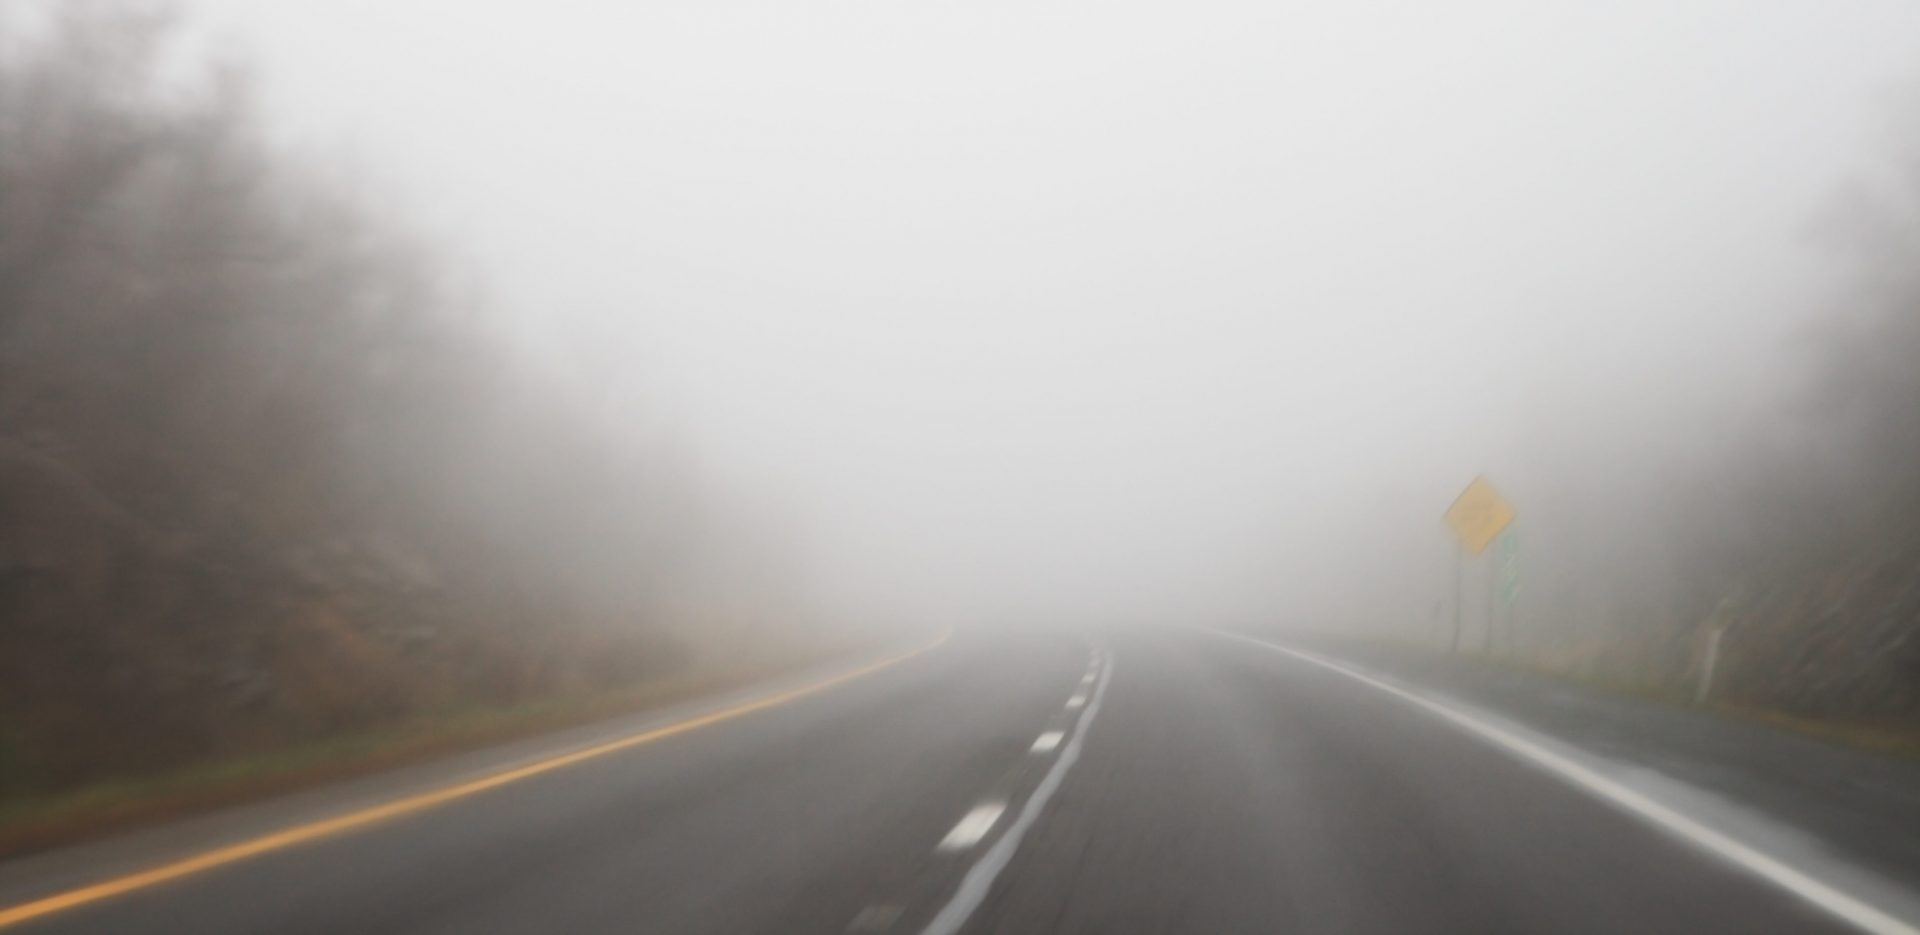 A misty road with foggy conditions, if in an accident due to poor weather conditions contact at skilled Michigan Accident Injury Attorneys.